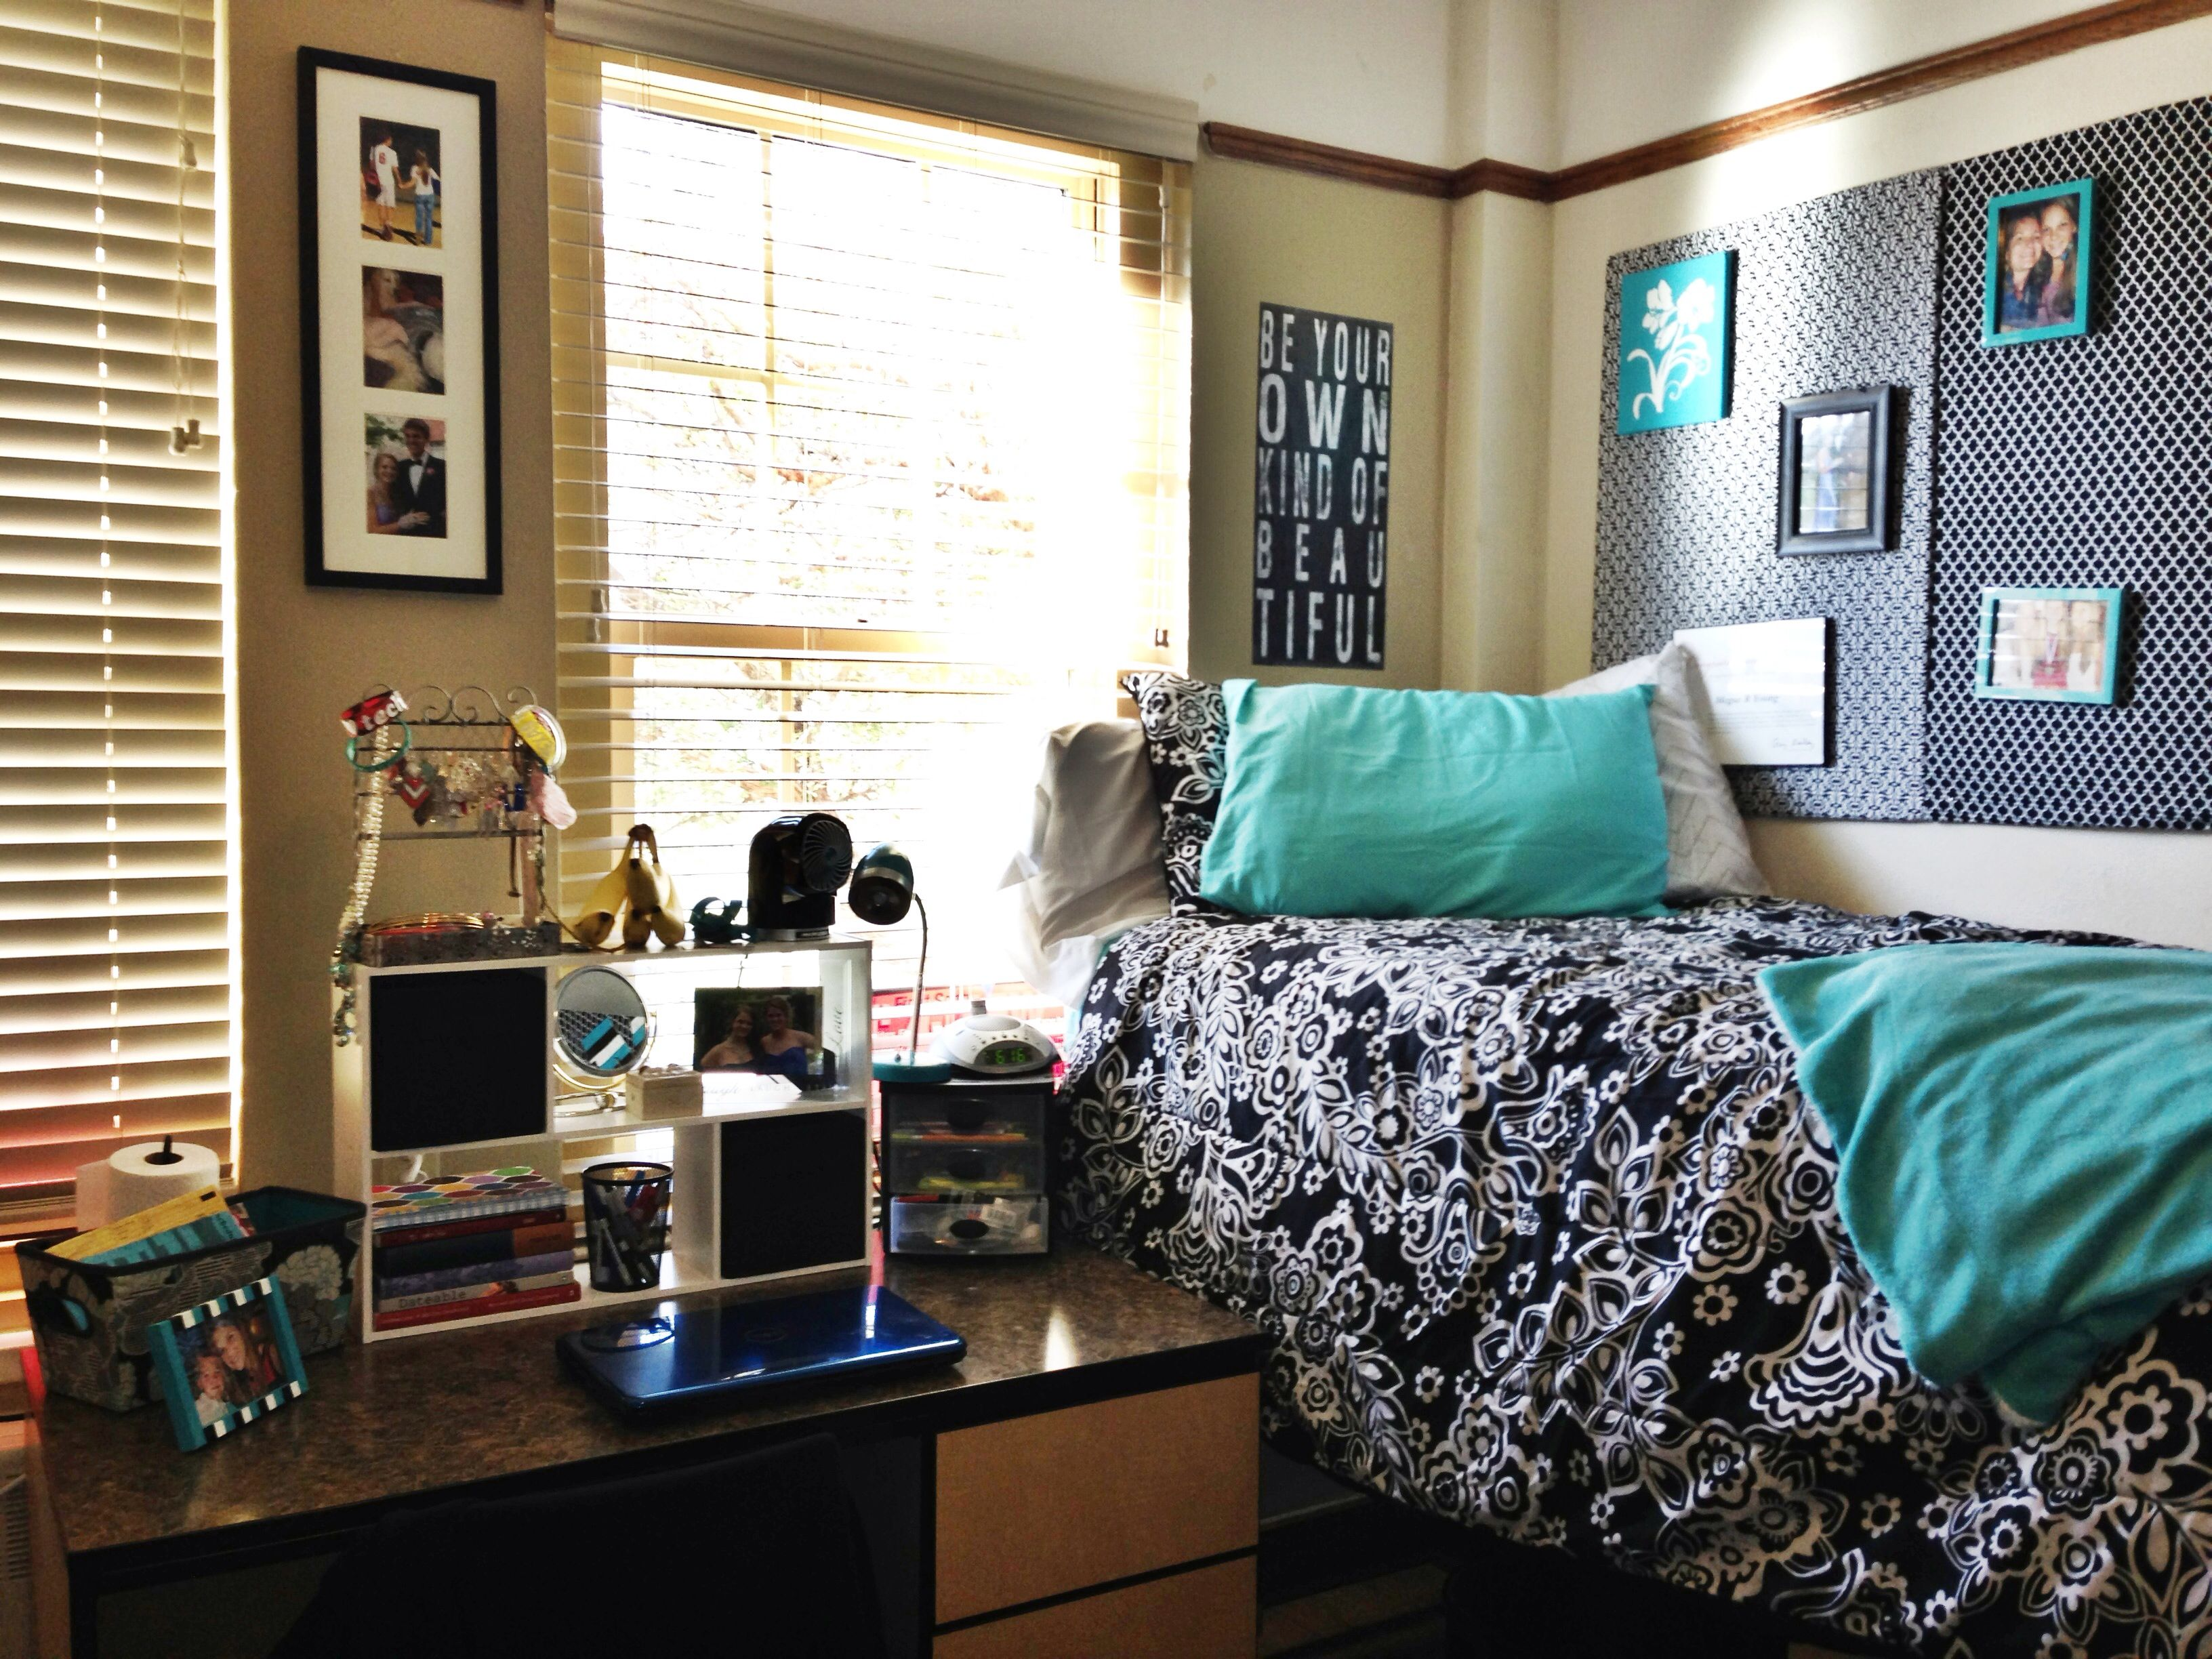 18 best bledsoe hall sneed hall images on pinterest dorm room 3 turquoise dorm room at texas tech i used cardboard posters from walmart and wrapped them